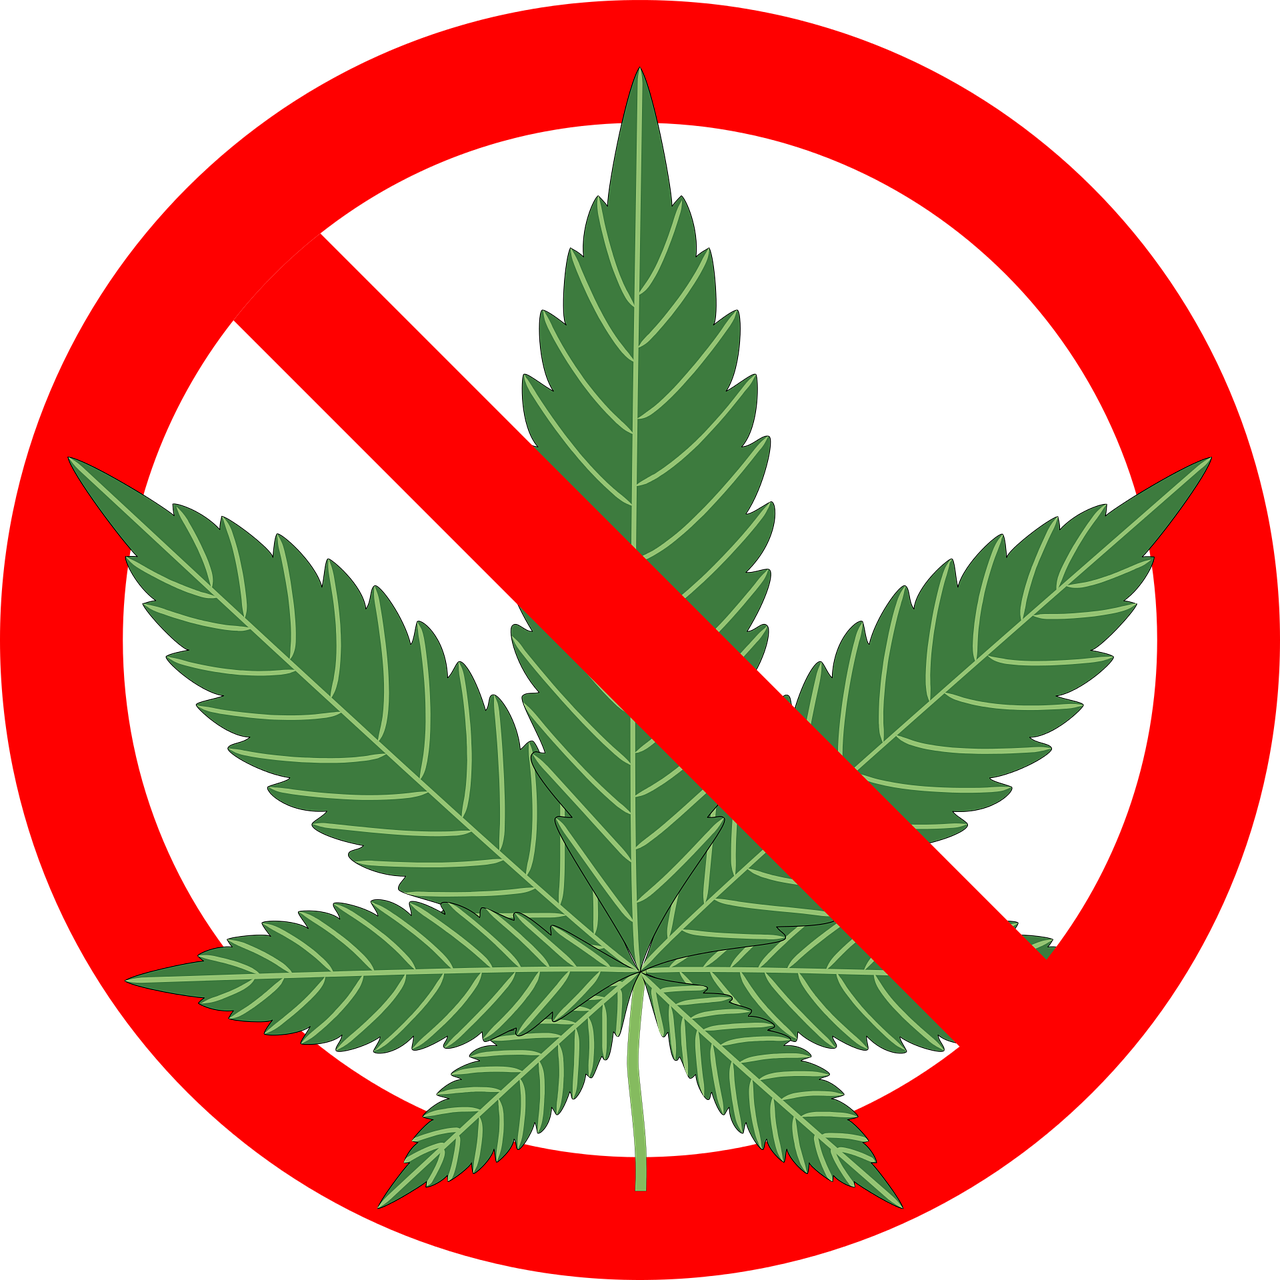 Are Cannabis Laws Paternalistic?